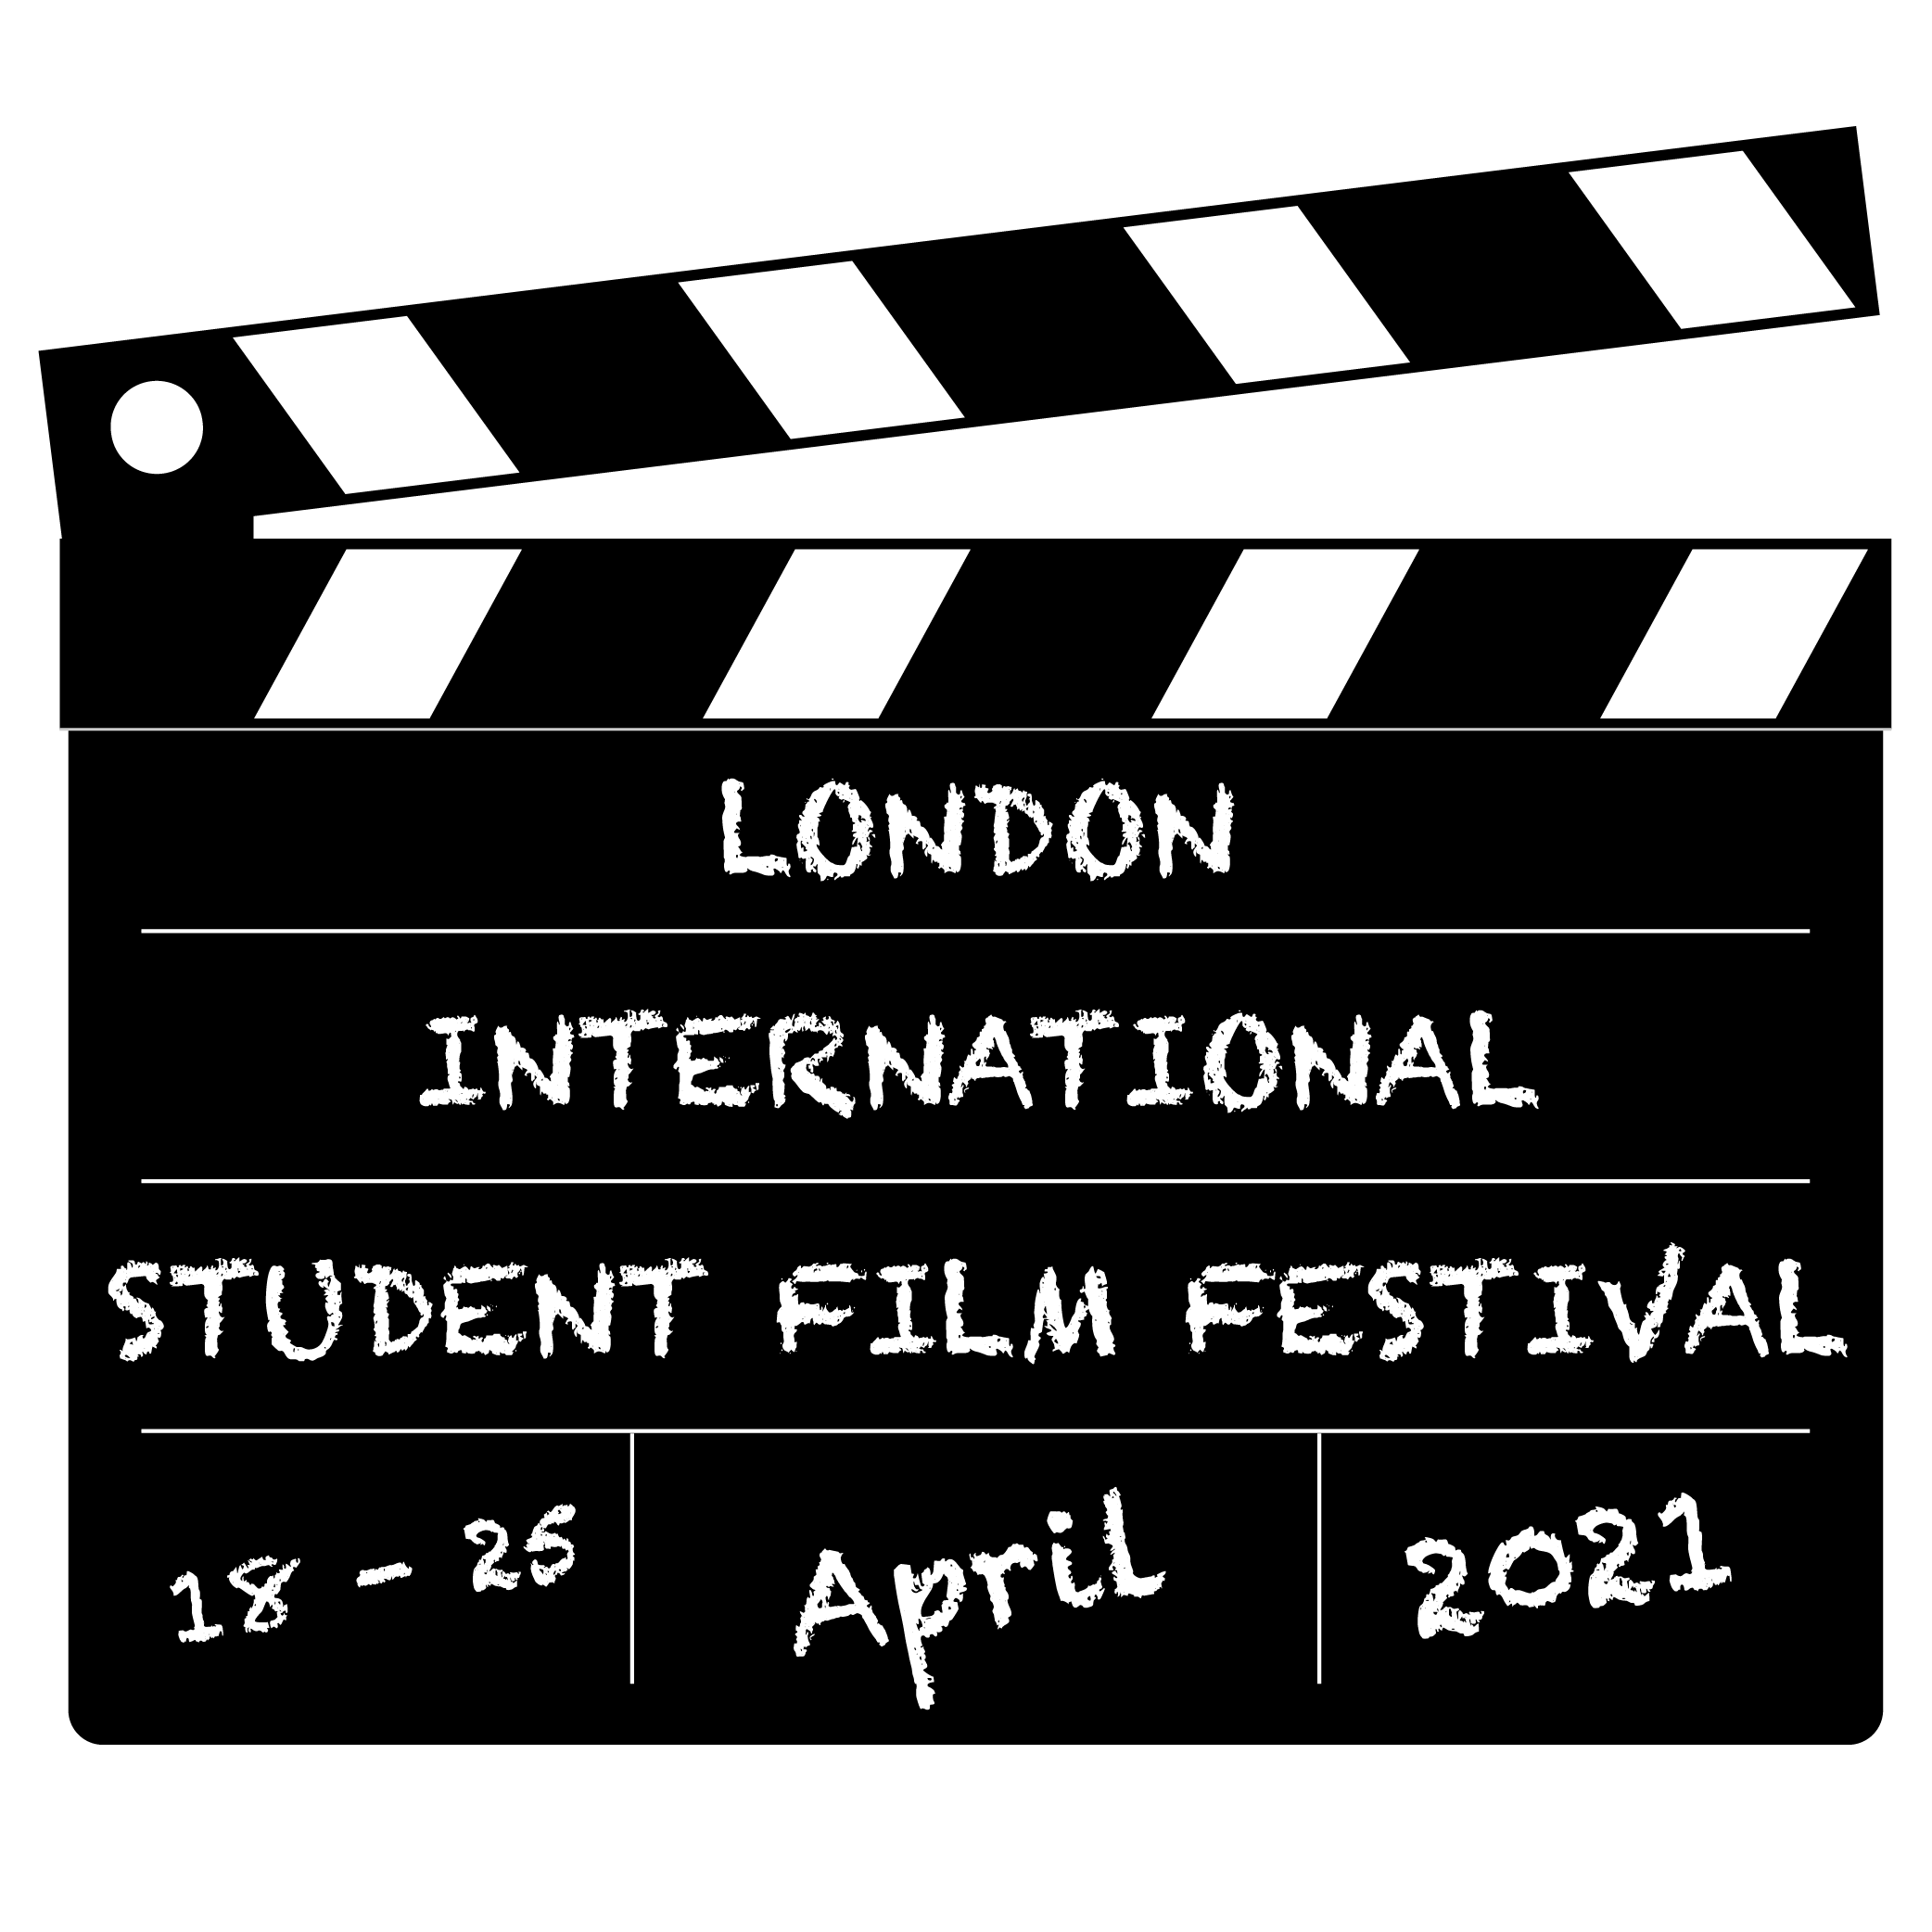 London International Student Film Festival